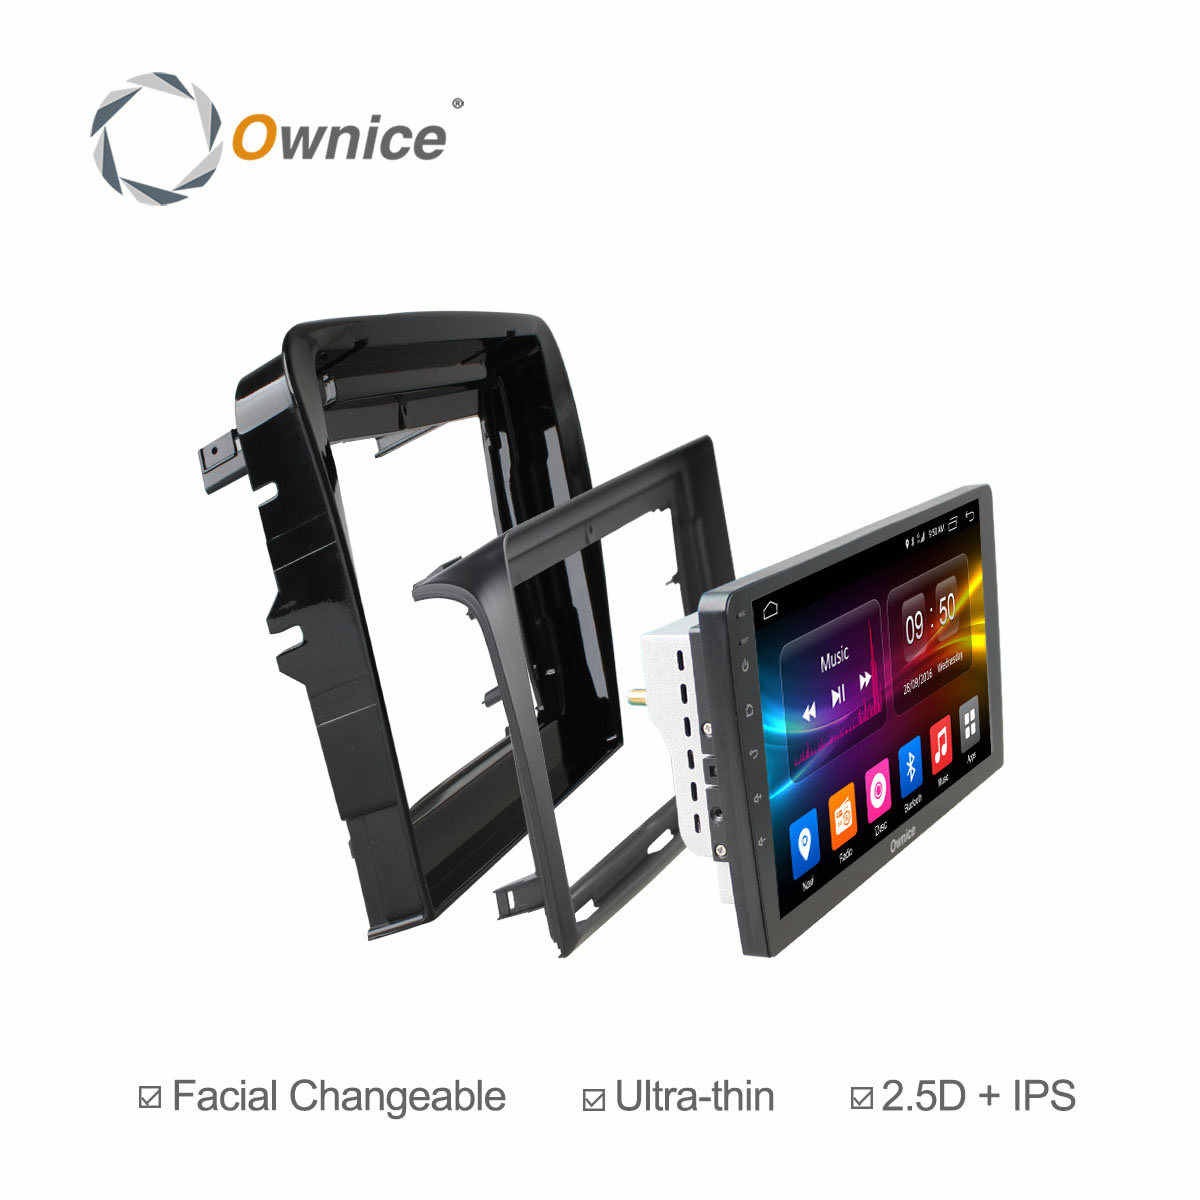 Ownice C500 + G10 Android 8.1 Car Audio VOOR MITSUBISHI L200 Trion 2007-2014 dvd gps speler navigatie hoofd unit 8 Core 32G ROM